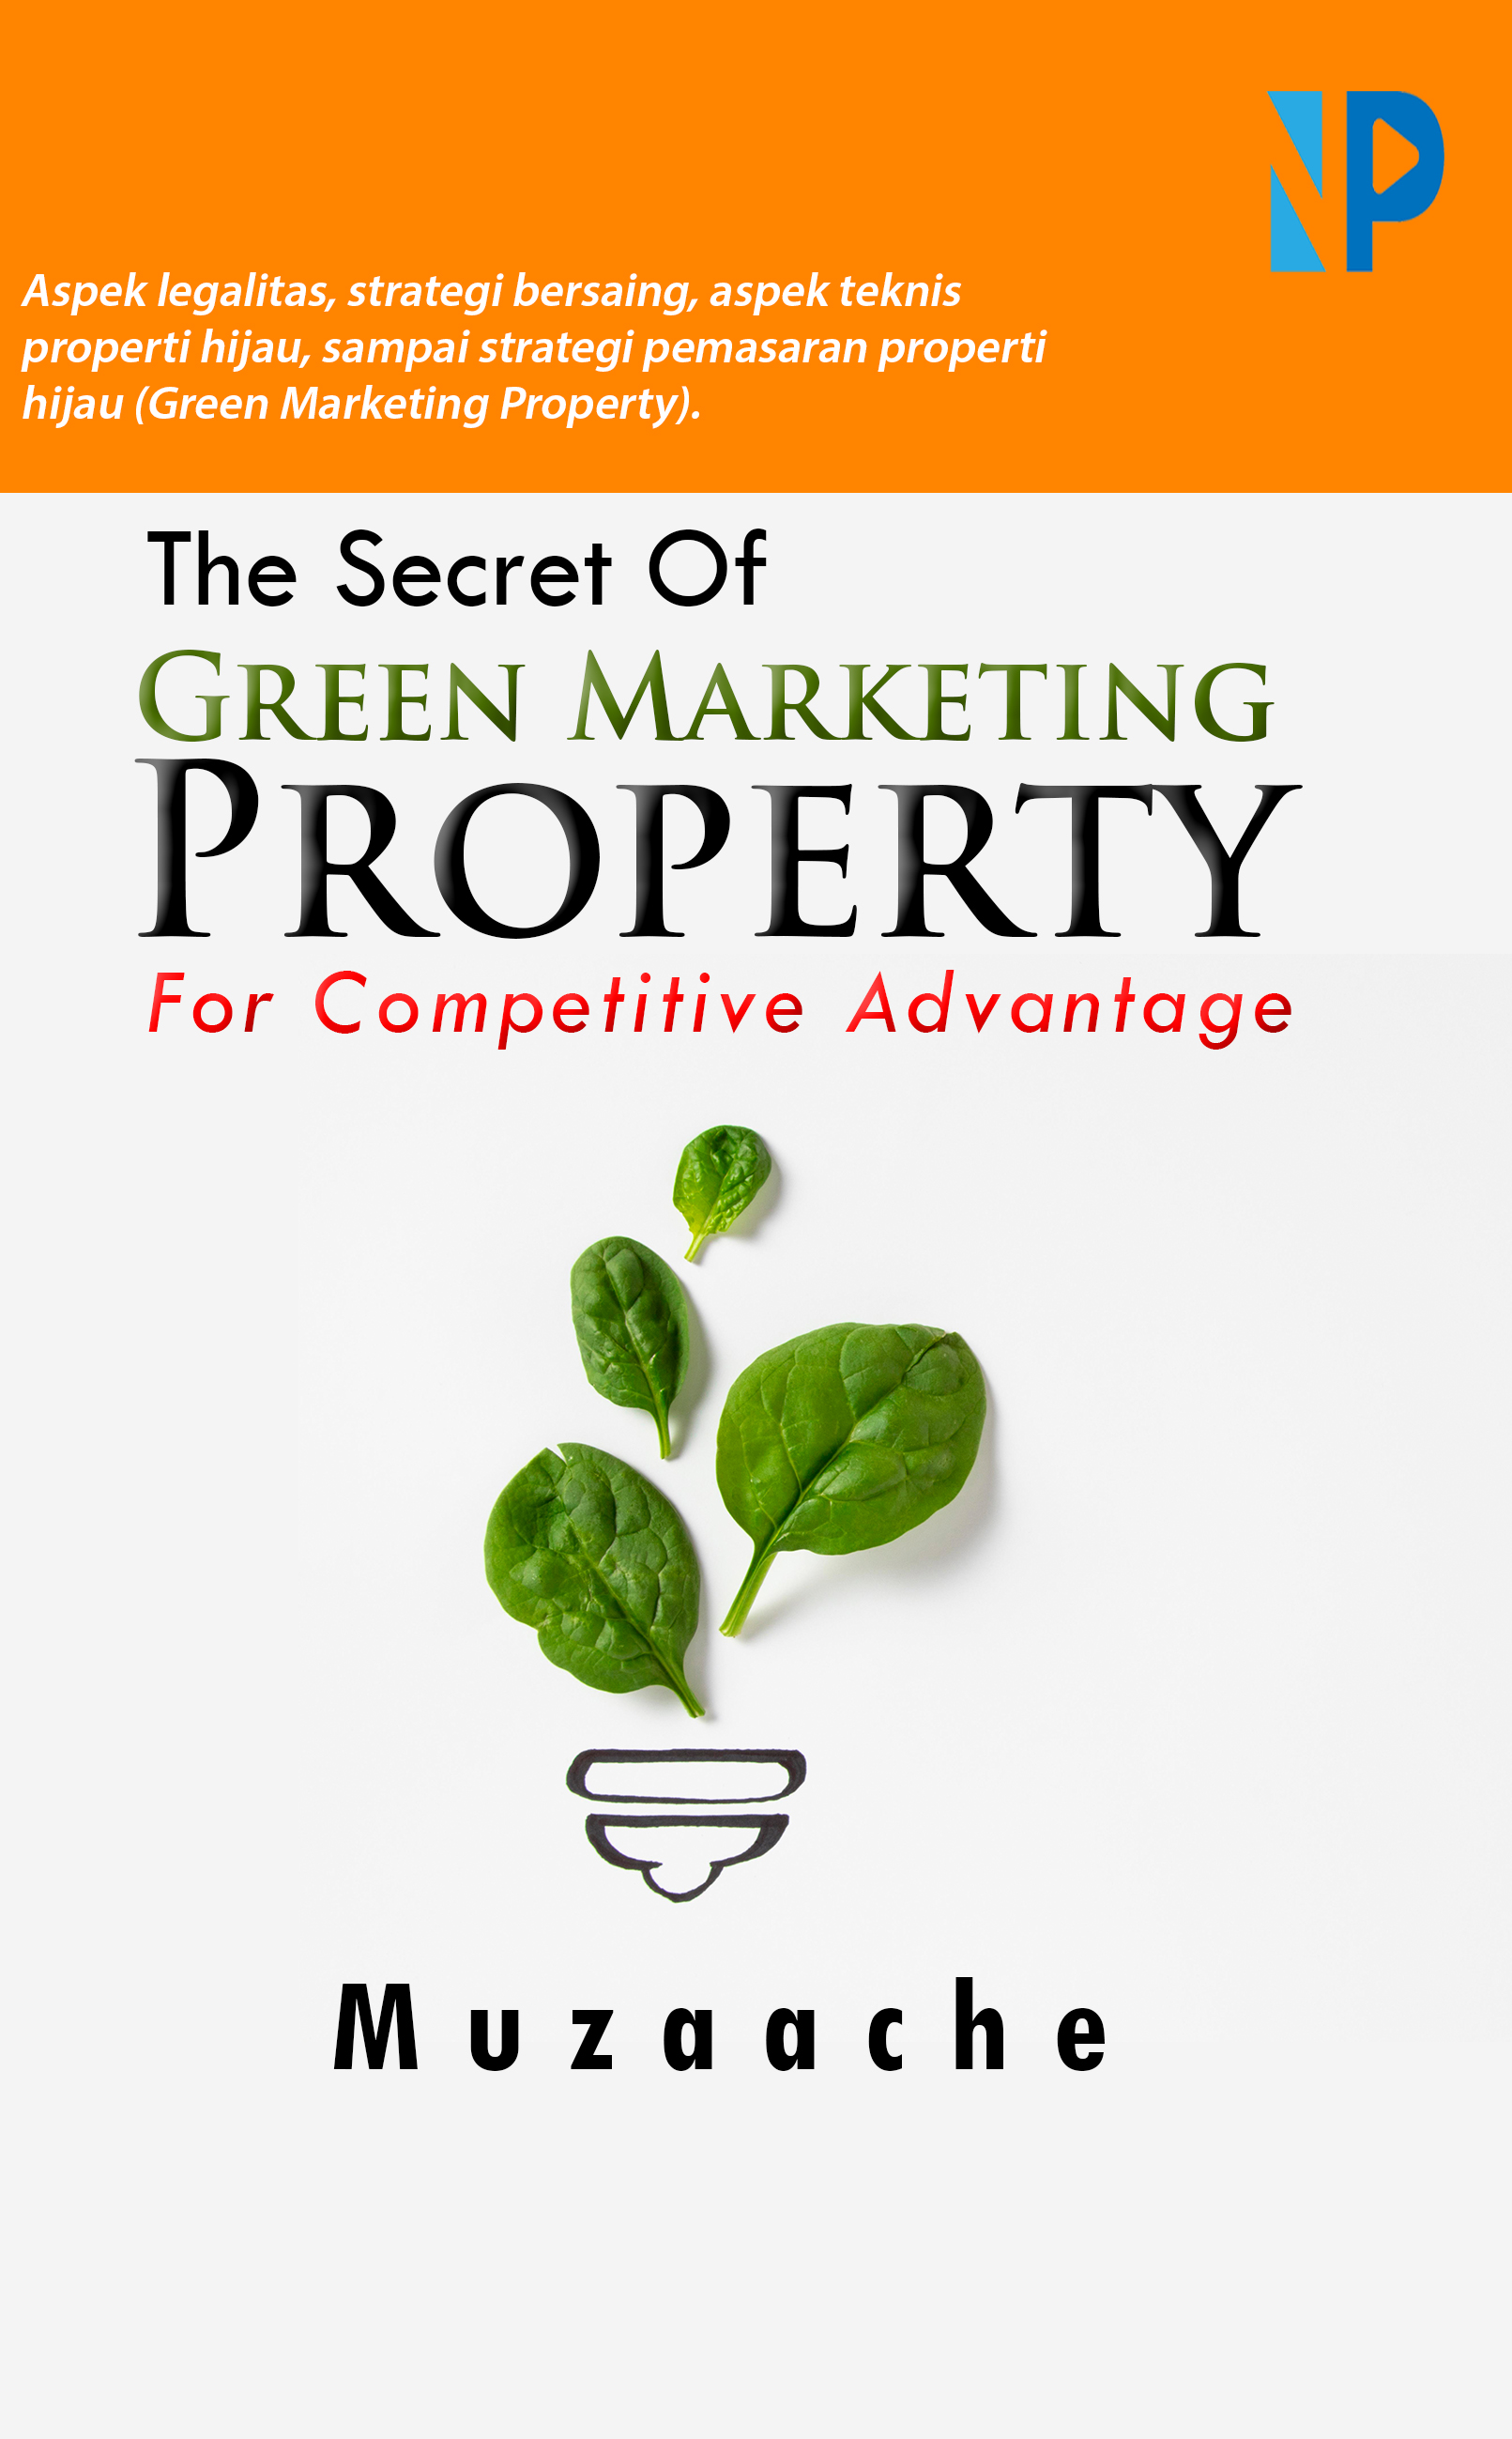 The secret of green marketing property for competitive advantage [sumber elektronis]